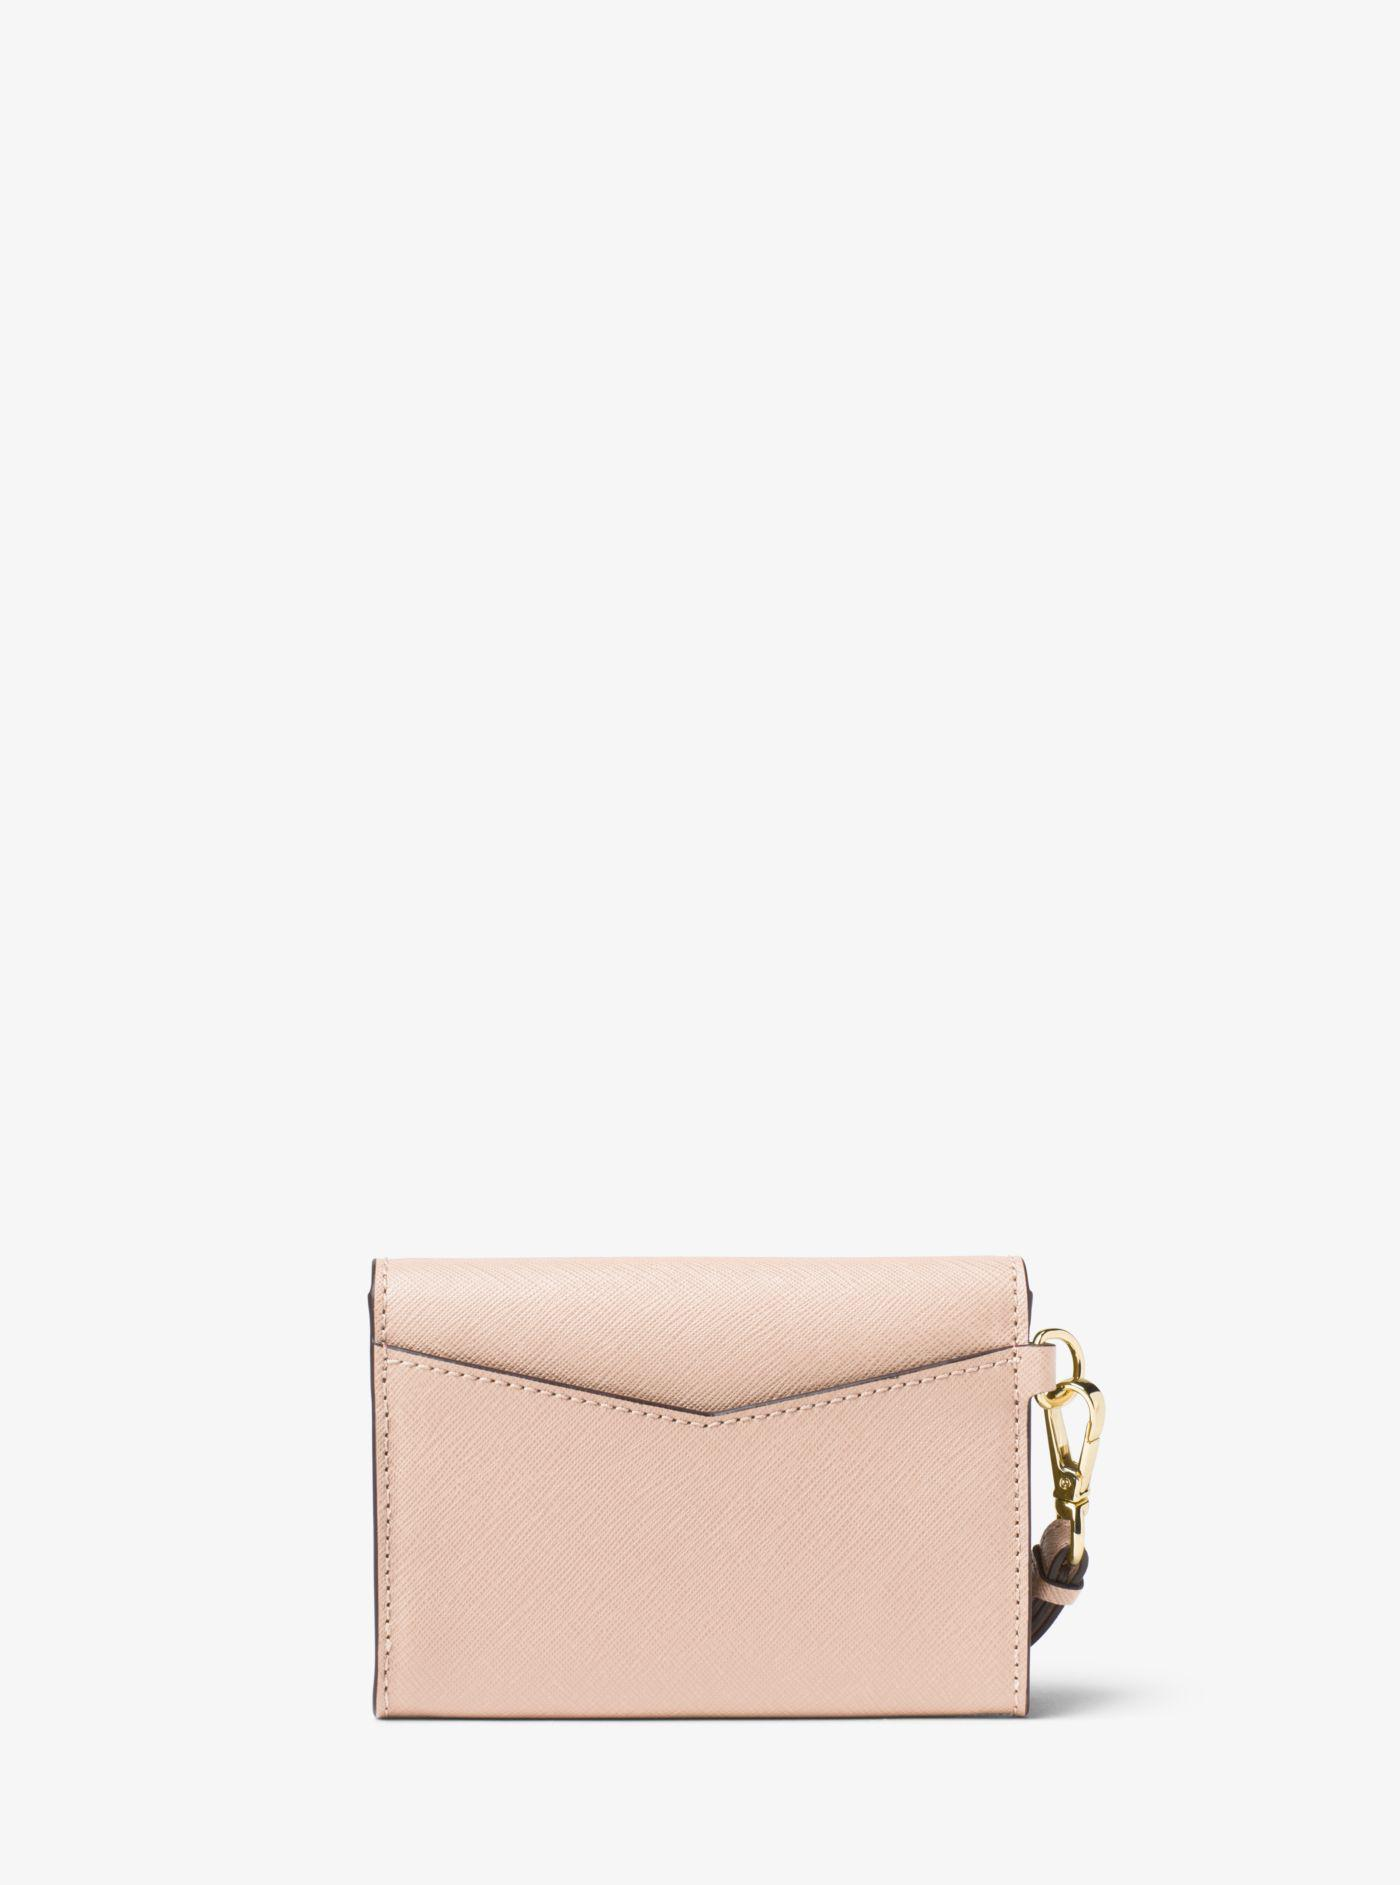 82a5390e3bc6 Lyst - Michael Kors Honey Medium Leather Wristlet in Pink